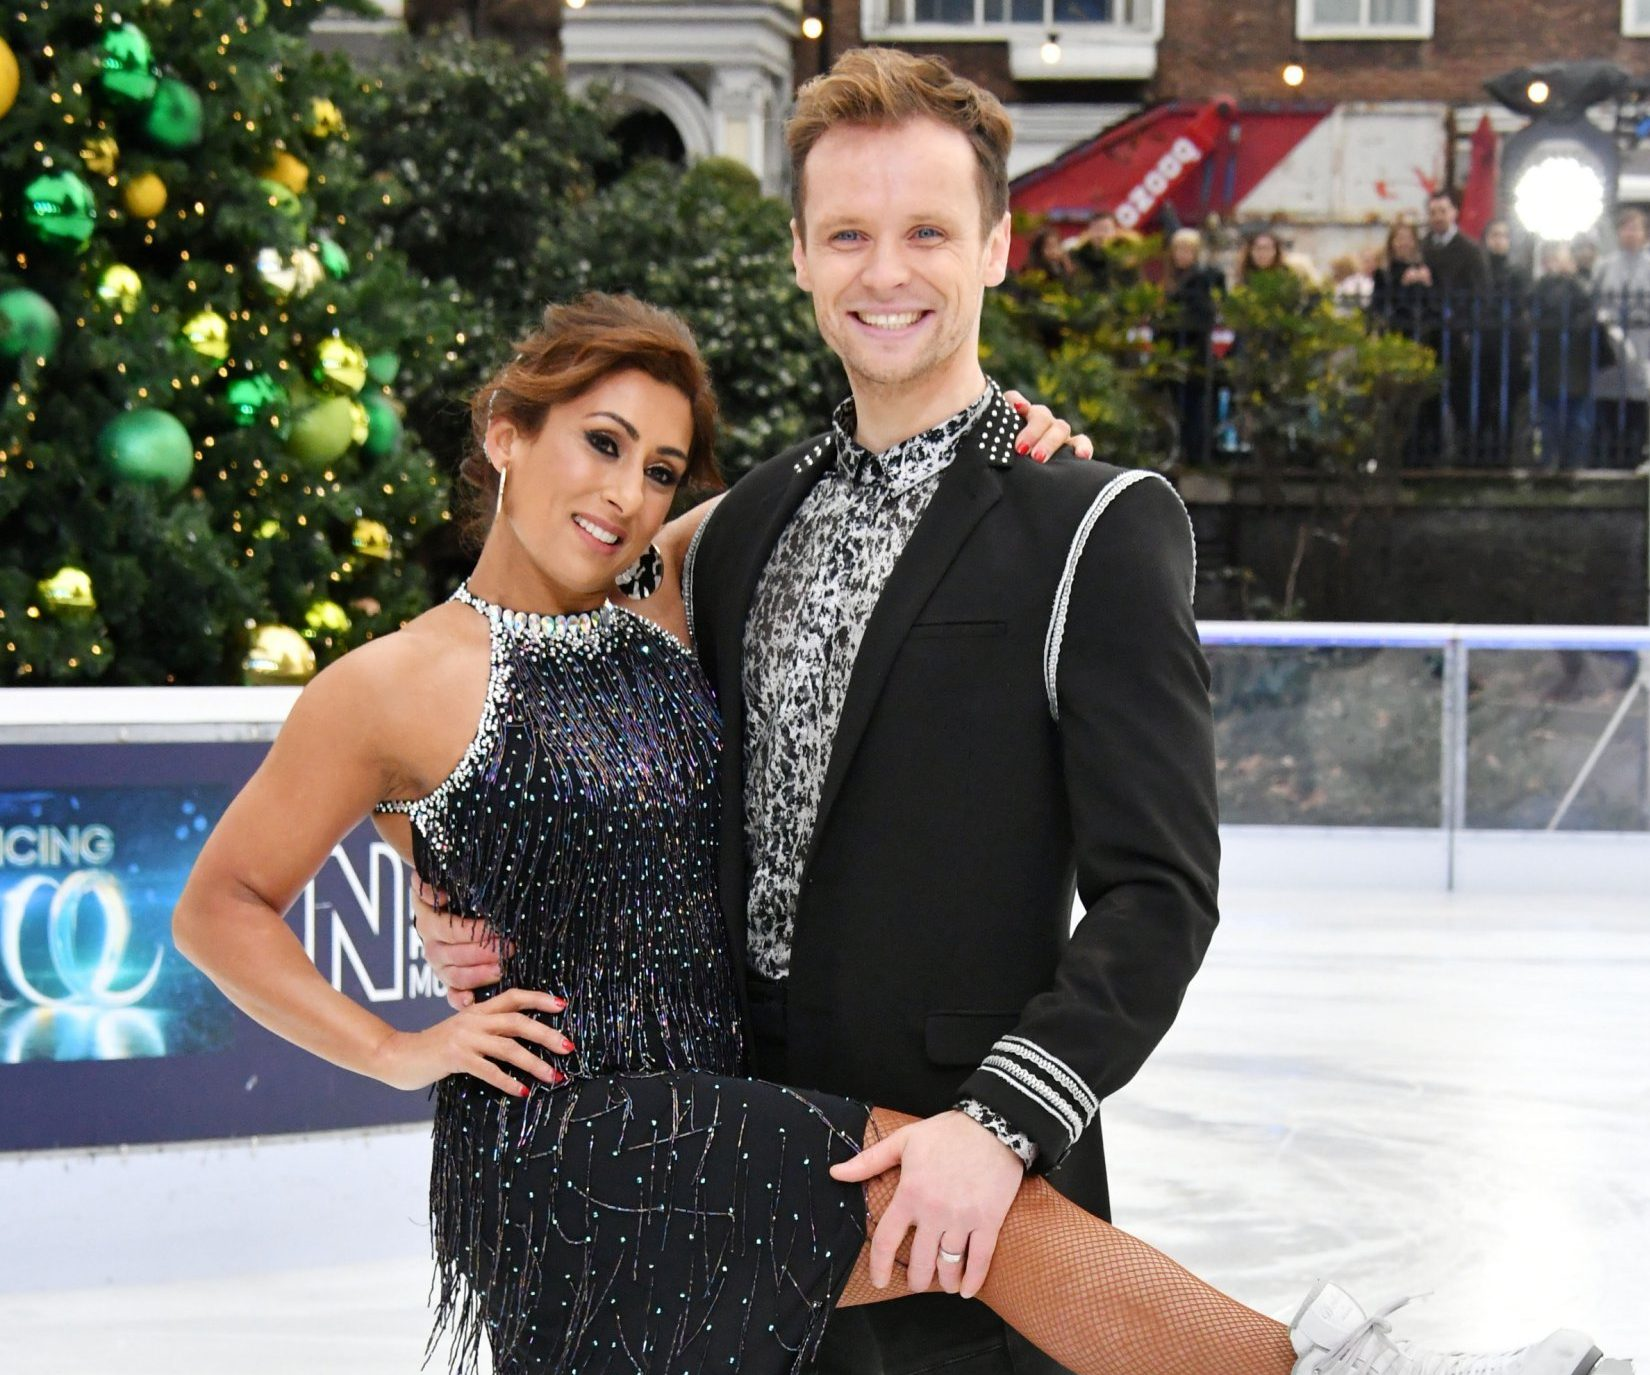 Saira Khan wanted to quit Dancing On Ice before it's even begun as she calls it 'the hardest thing she's ever done'